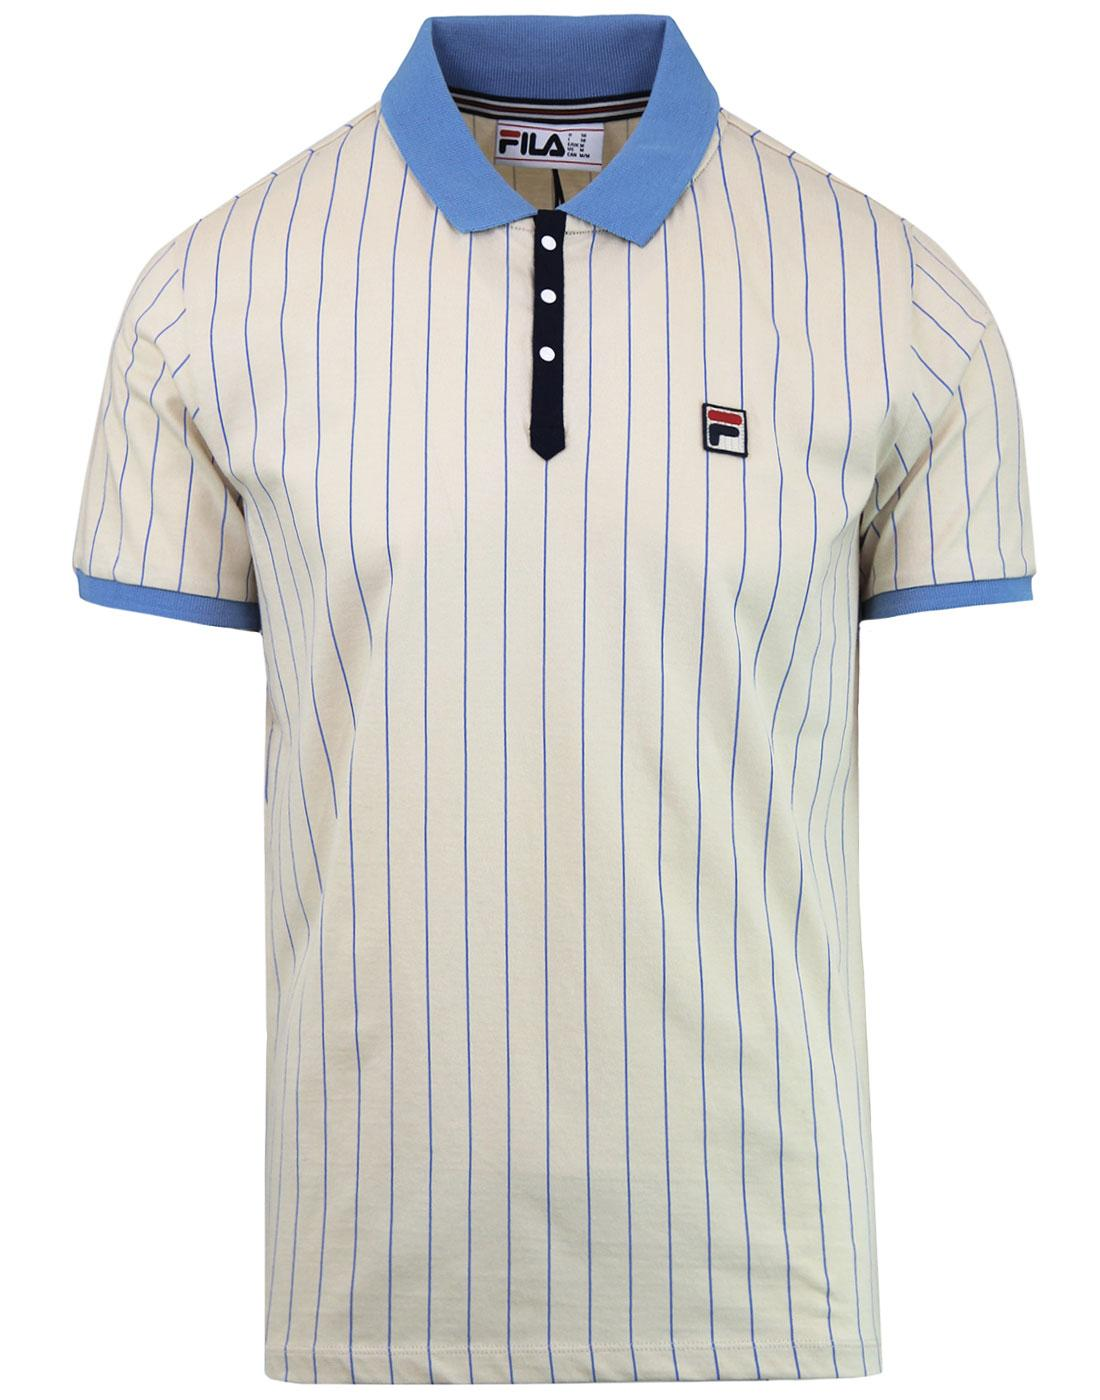 BB1 FILA VINTAGE Retro Borg Tennis Polo Top (T/B)